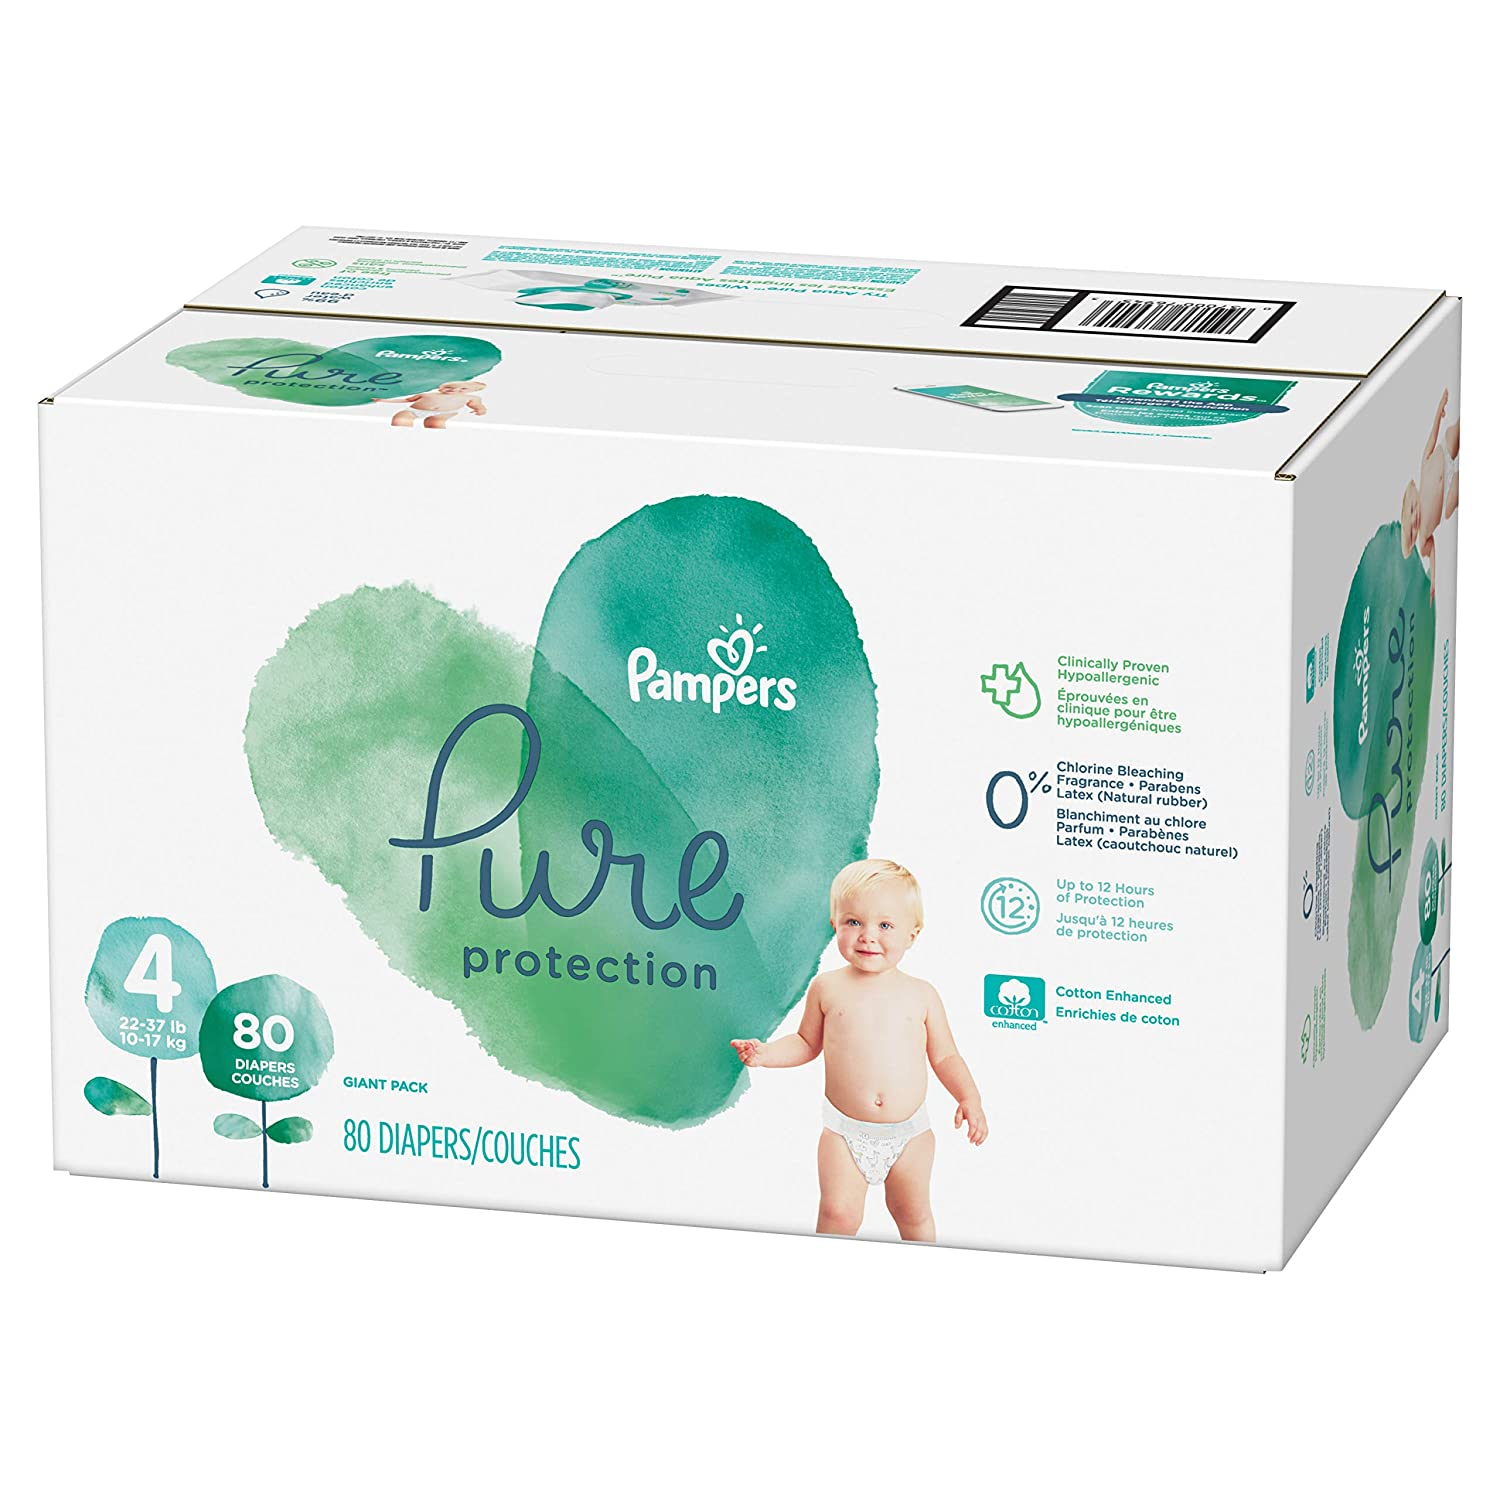 Pampers Pure Disposable Baby Diapers2